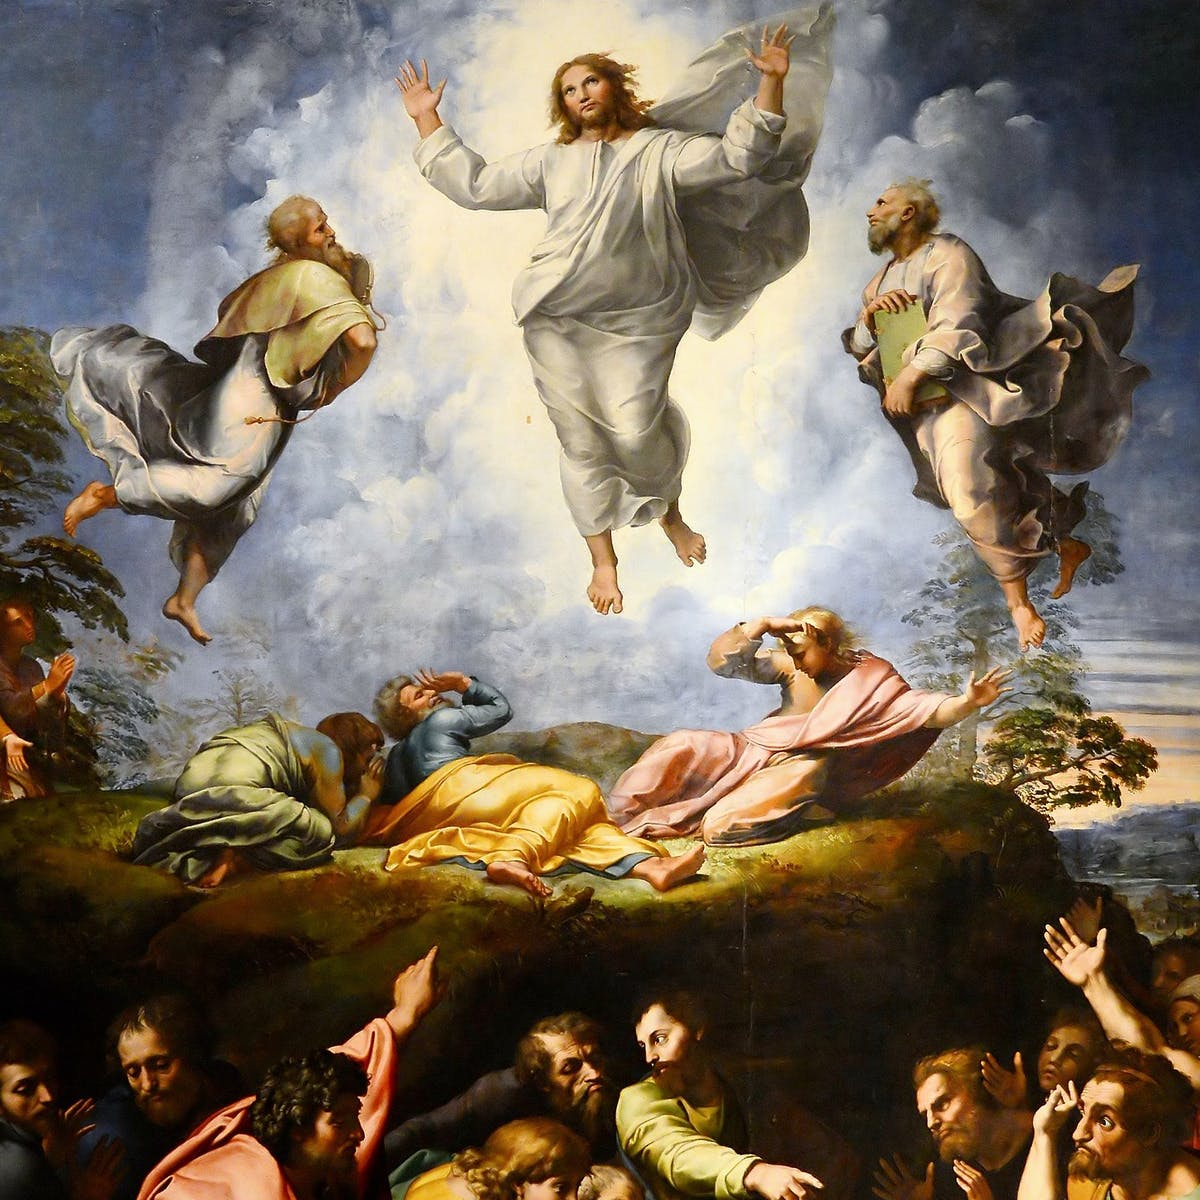 The long history of how Jesus came to resemble a white European